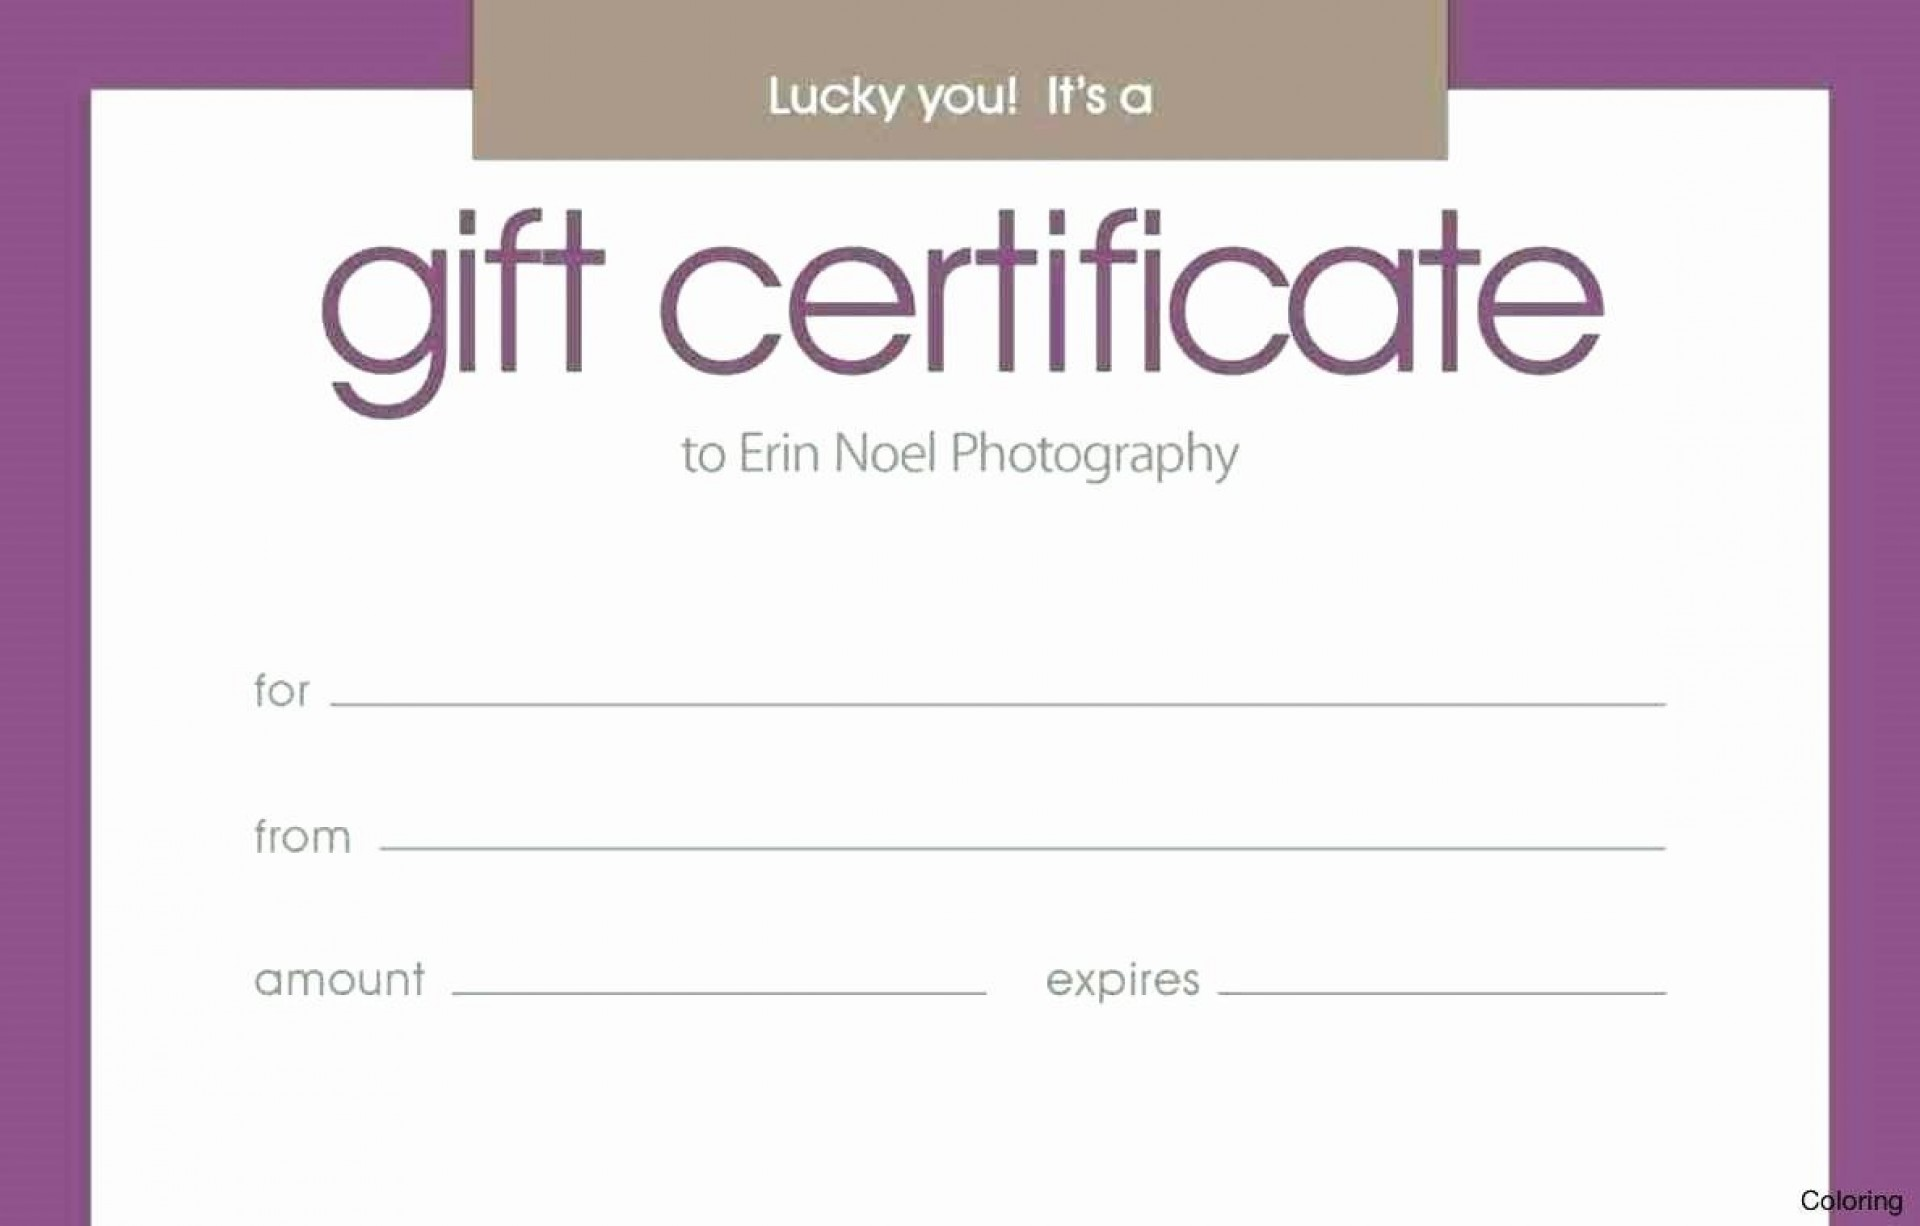 007 Stupendou Free Silent Auction Gift Certificate Template Inspiration 1920